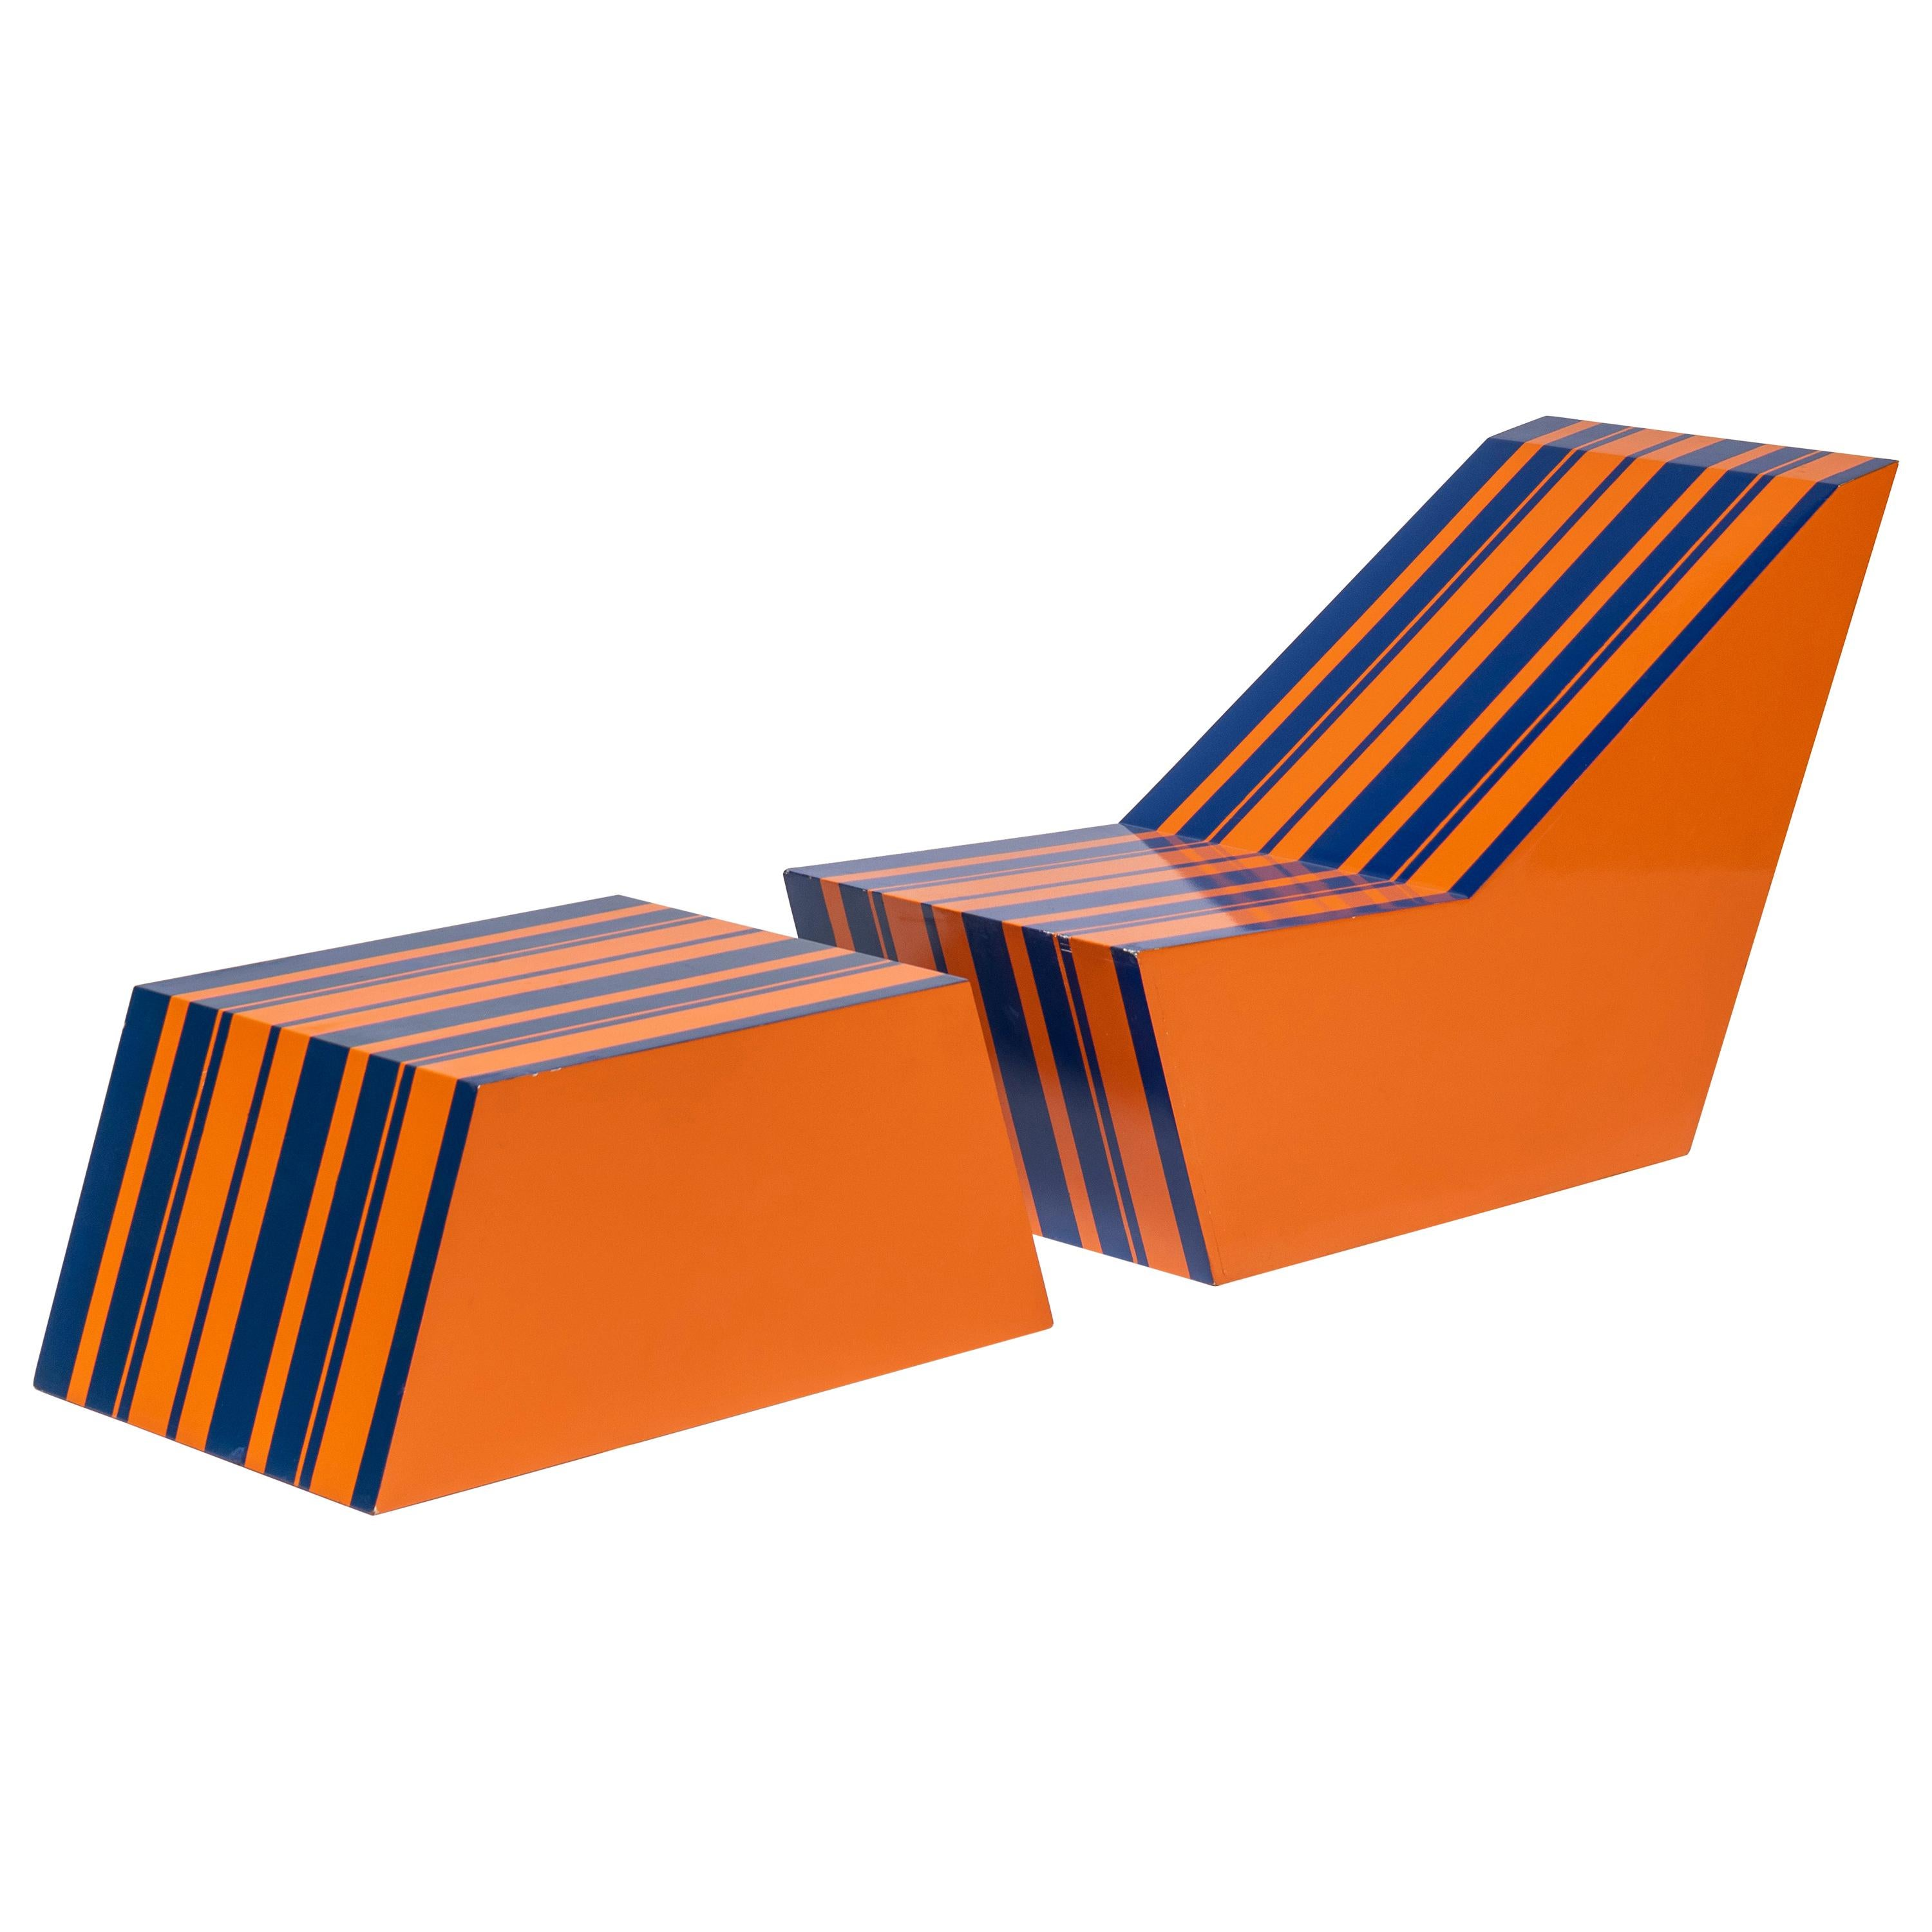 Bill Bell Painted Plywood Chair and Ottoman